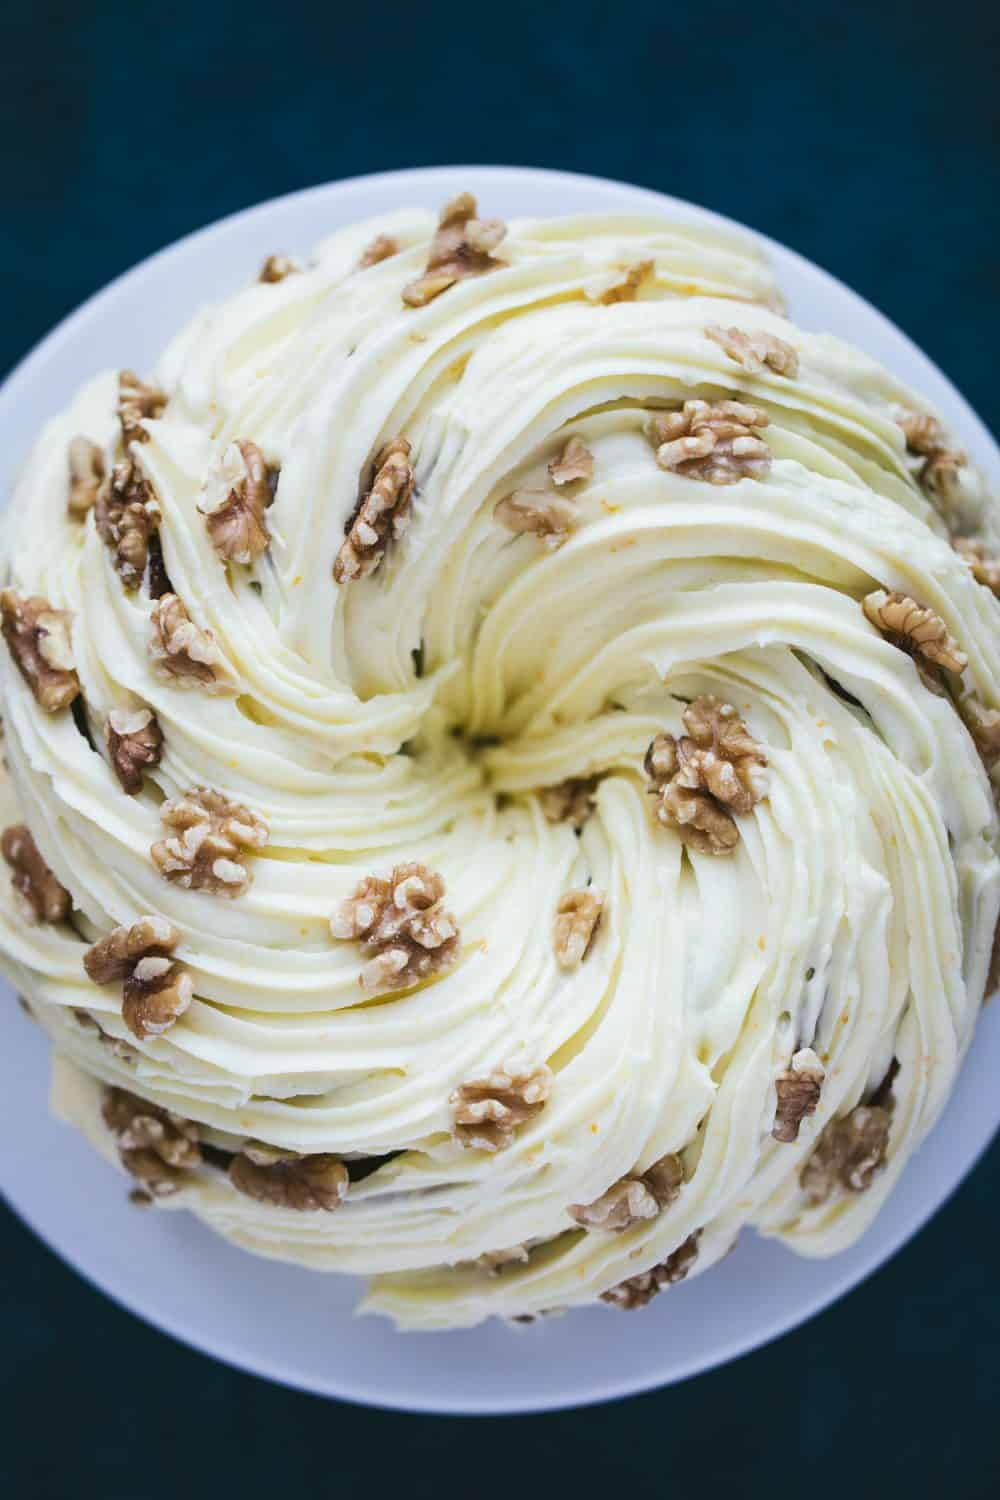 A carrot cake bundt cake covered in cream cheese frosting and walnuts.